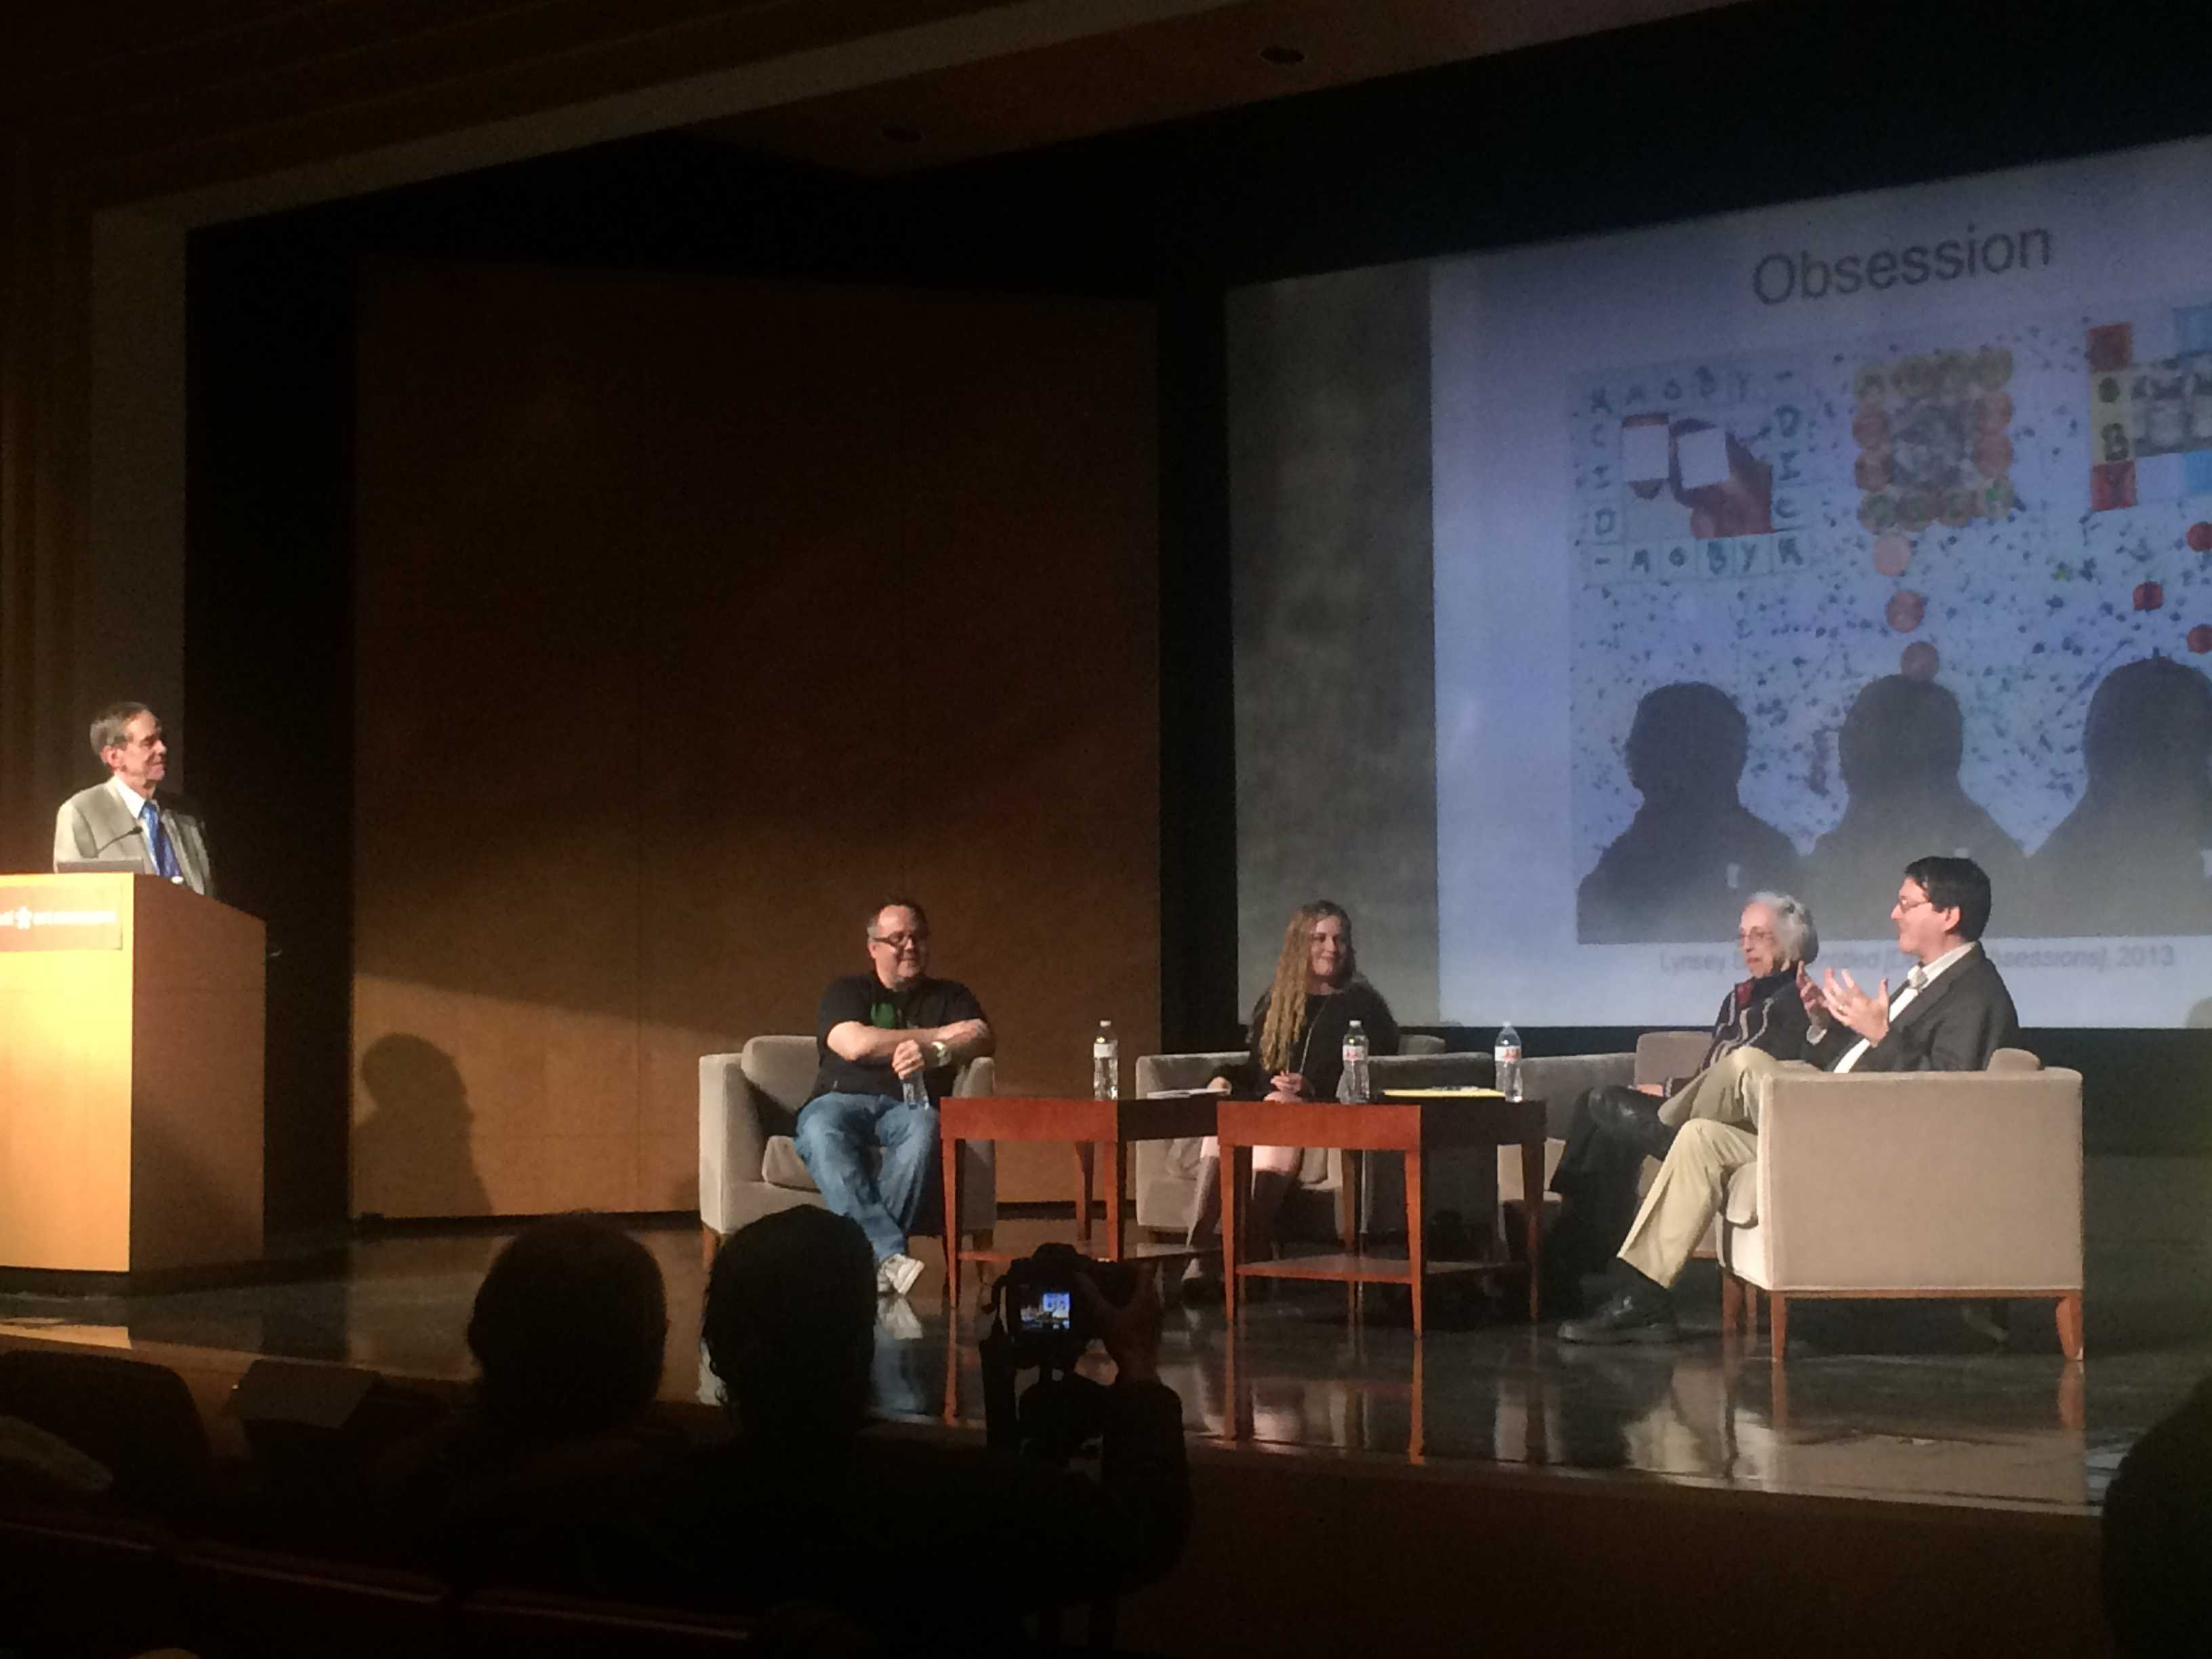 Panelist speak at an event held at the Cincinnati Art Museum on Friday April 24, 2015.